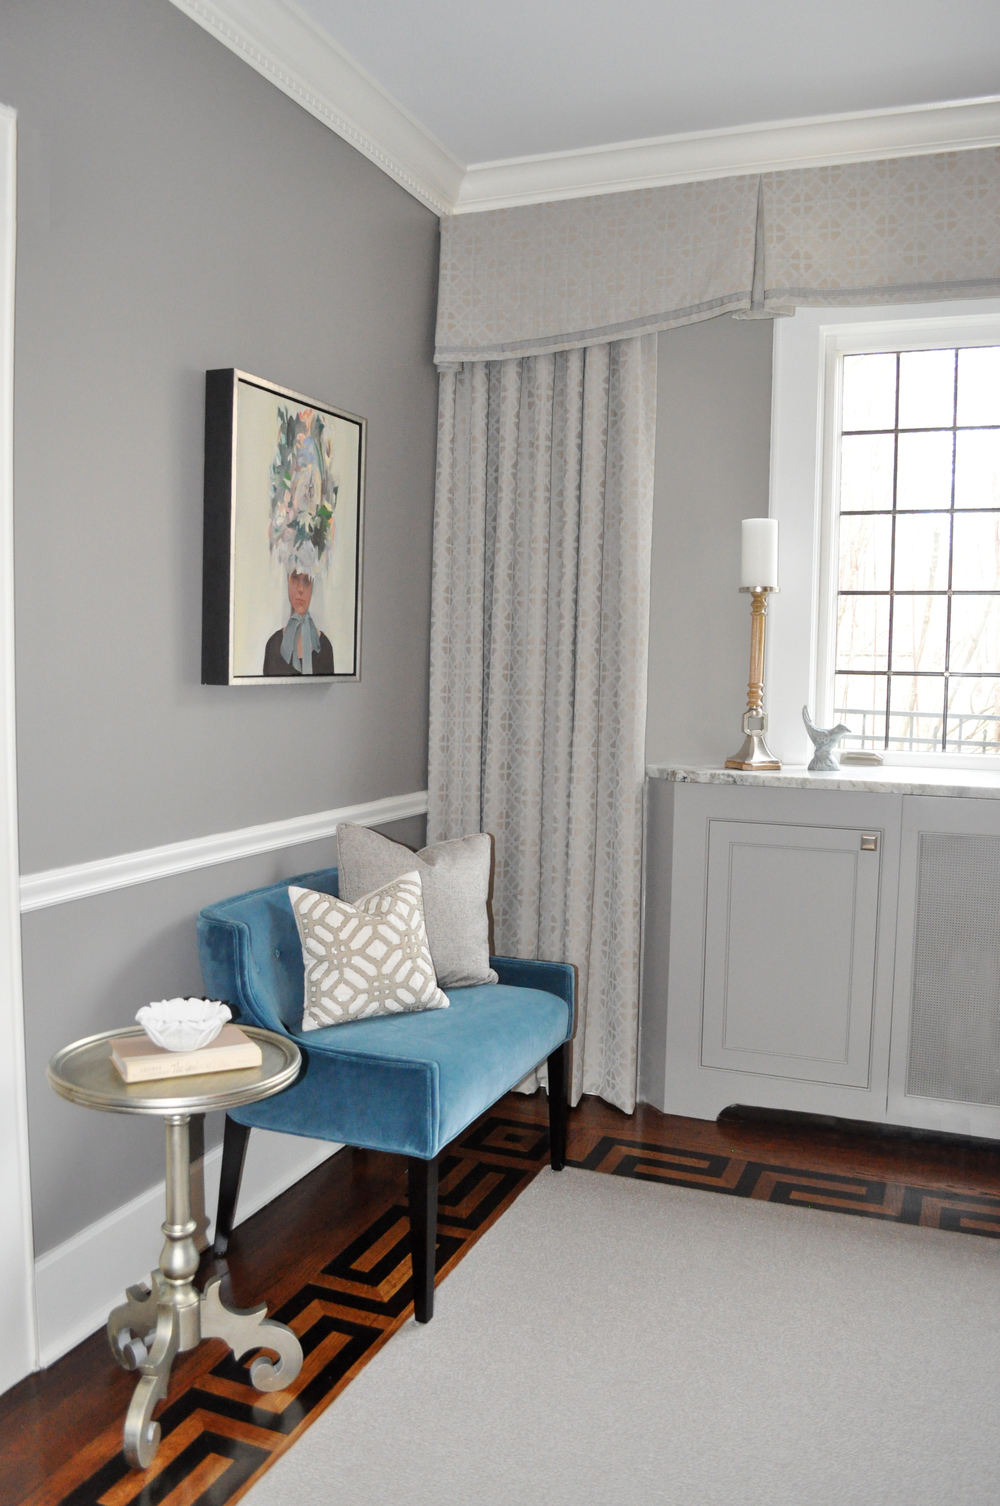 KAM DESIGN_Dining Room_Custom Leaded Glass Casement Windows_Custom Sideboard Radiator Cover_Gray_Taupe_Teal_Classic Elegance_Galviston Gray_Stark Invicta Rug_Pollack Wool Grille Custom Drapery_Jessica Charles Bench .jpg